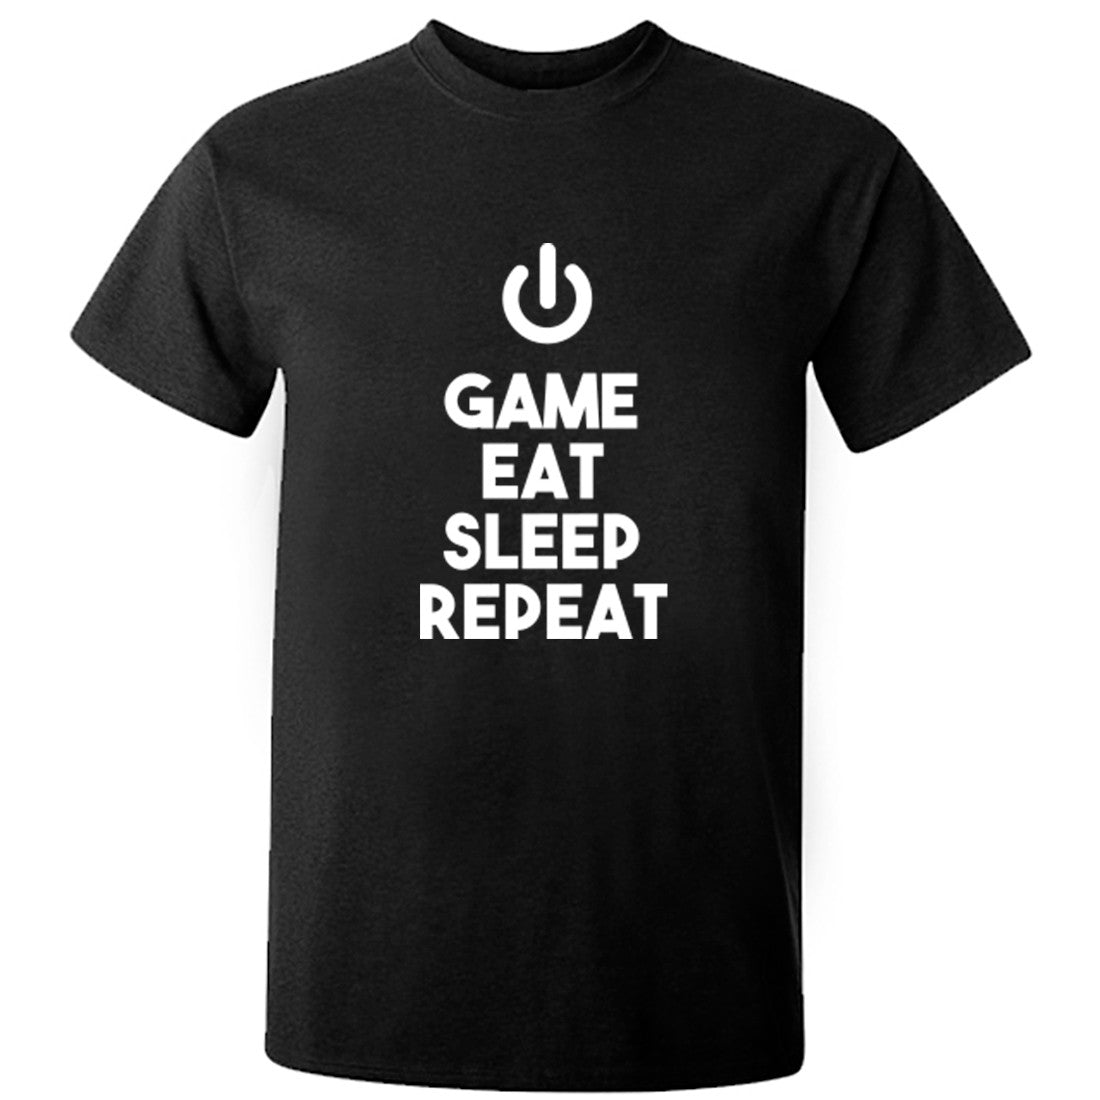 Game Eat Sleep Repeat Unisex Fit T-Shirt K0444 - Illustrated Identity Ltd.